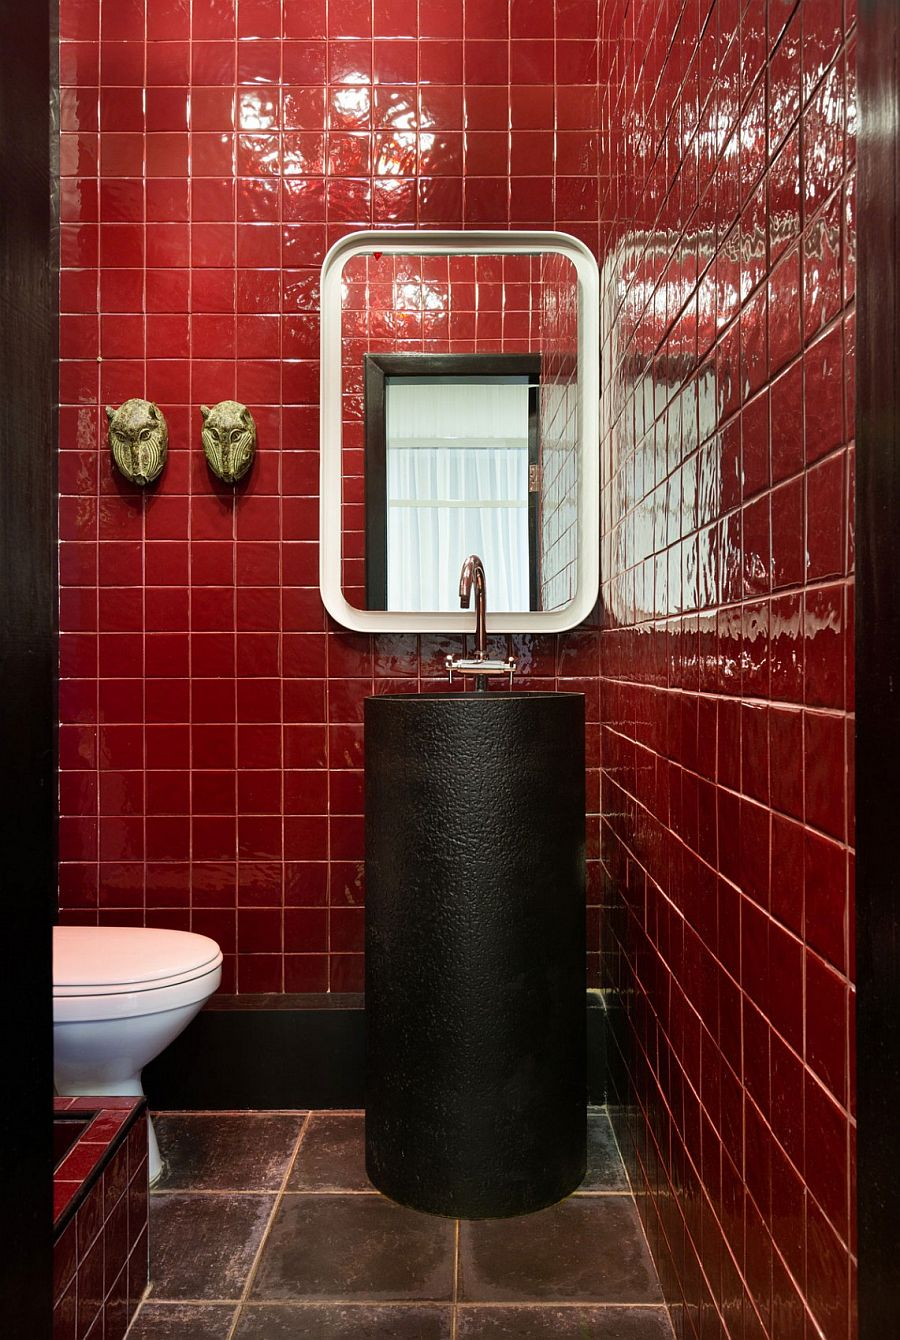 Red tile create a unique and stylish bathroom with touches of black